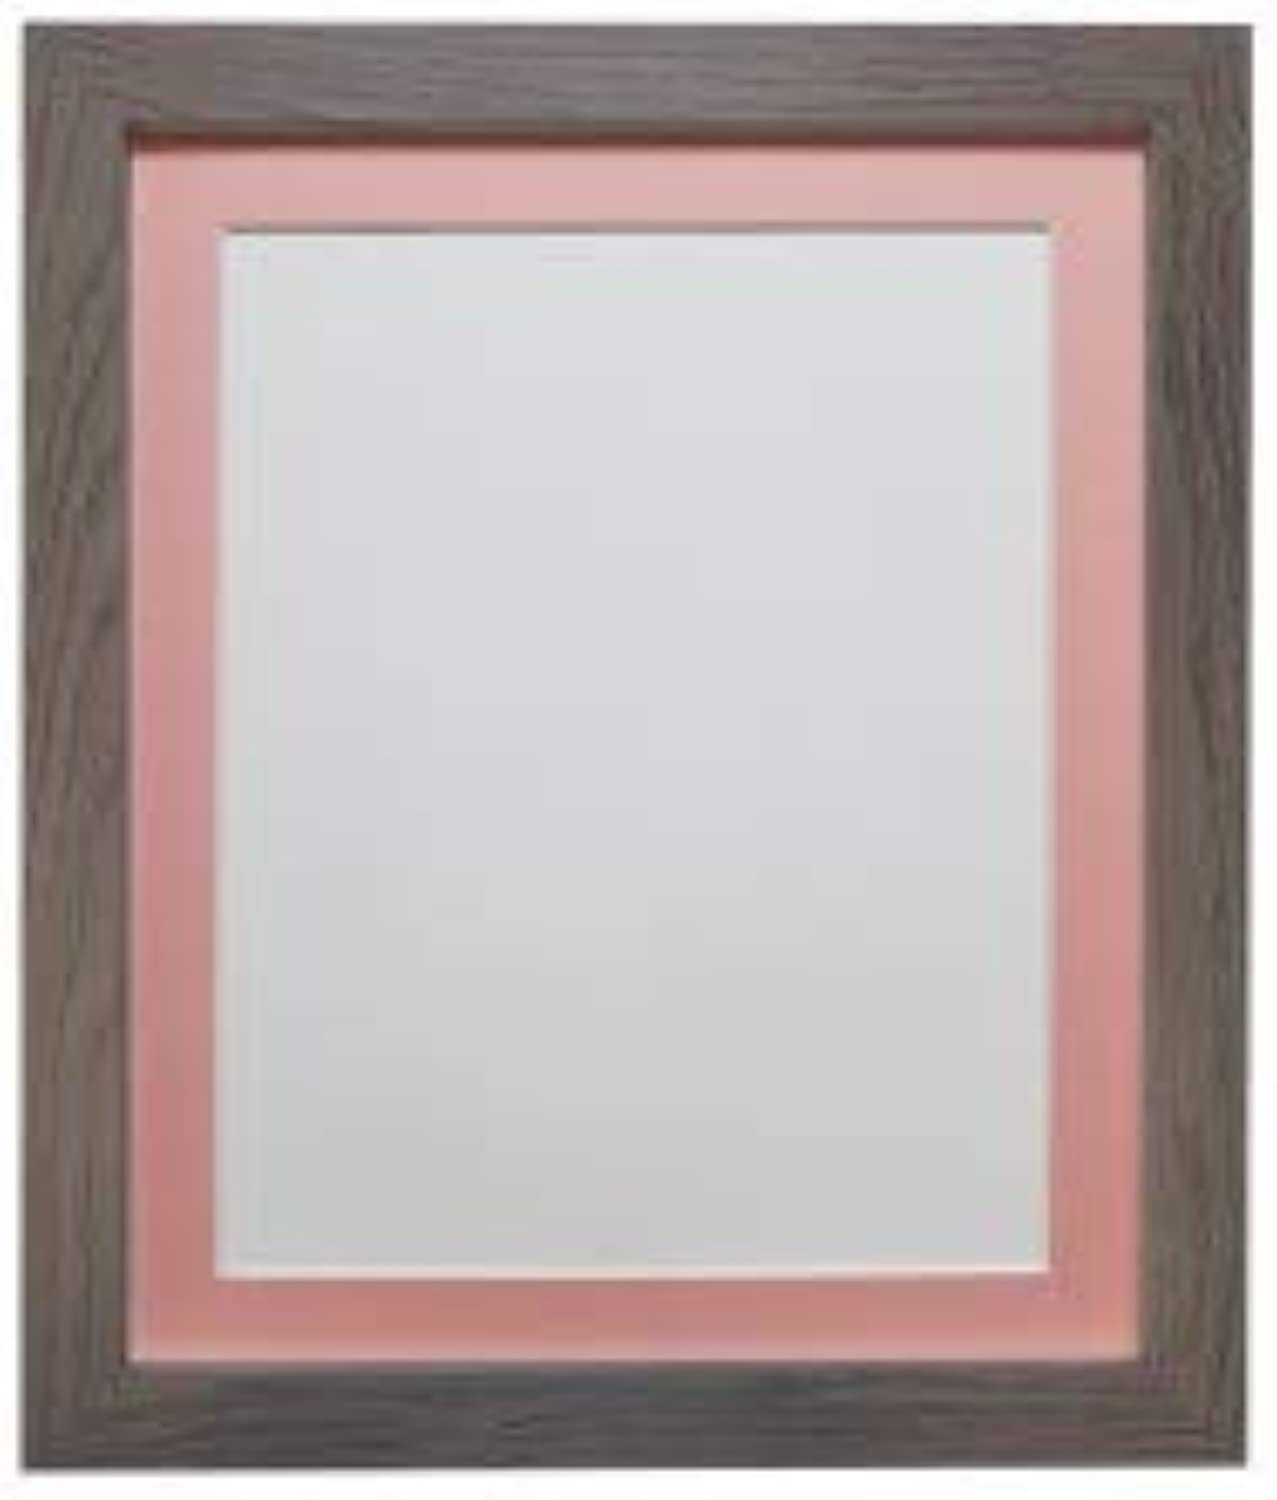 FRAMES BY POST H7 Picture Photo Frame, Plastic Glass, Dark Grey with Pink Mount, 40 x 30 cm Image Size 12 x 10 Inch